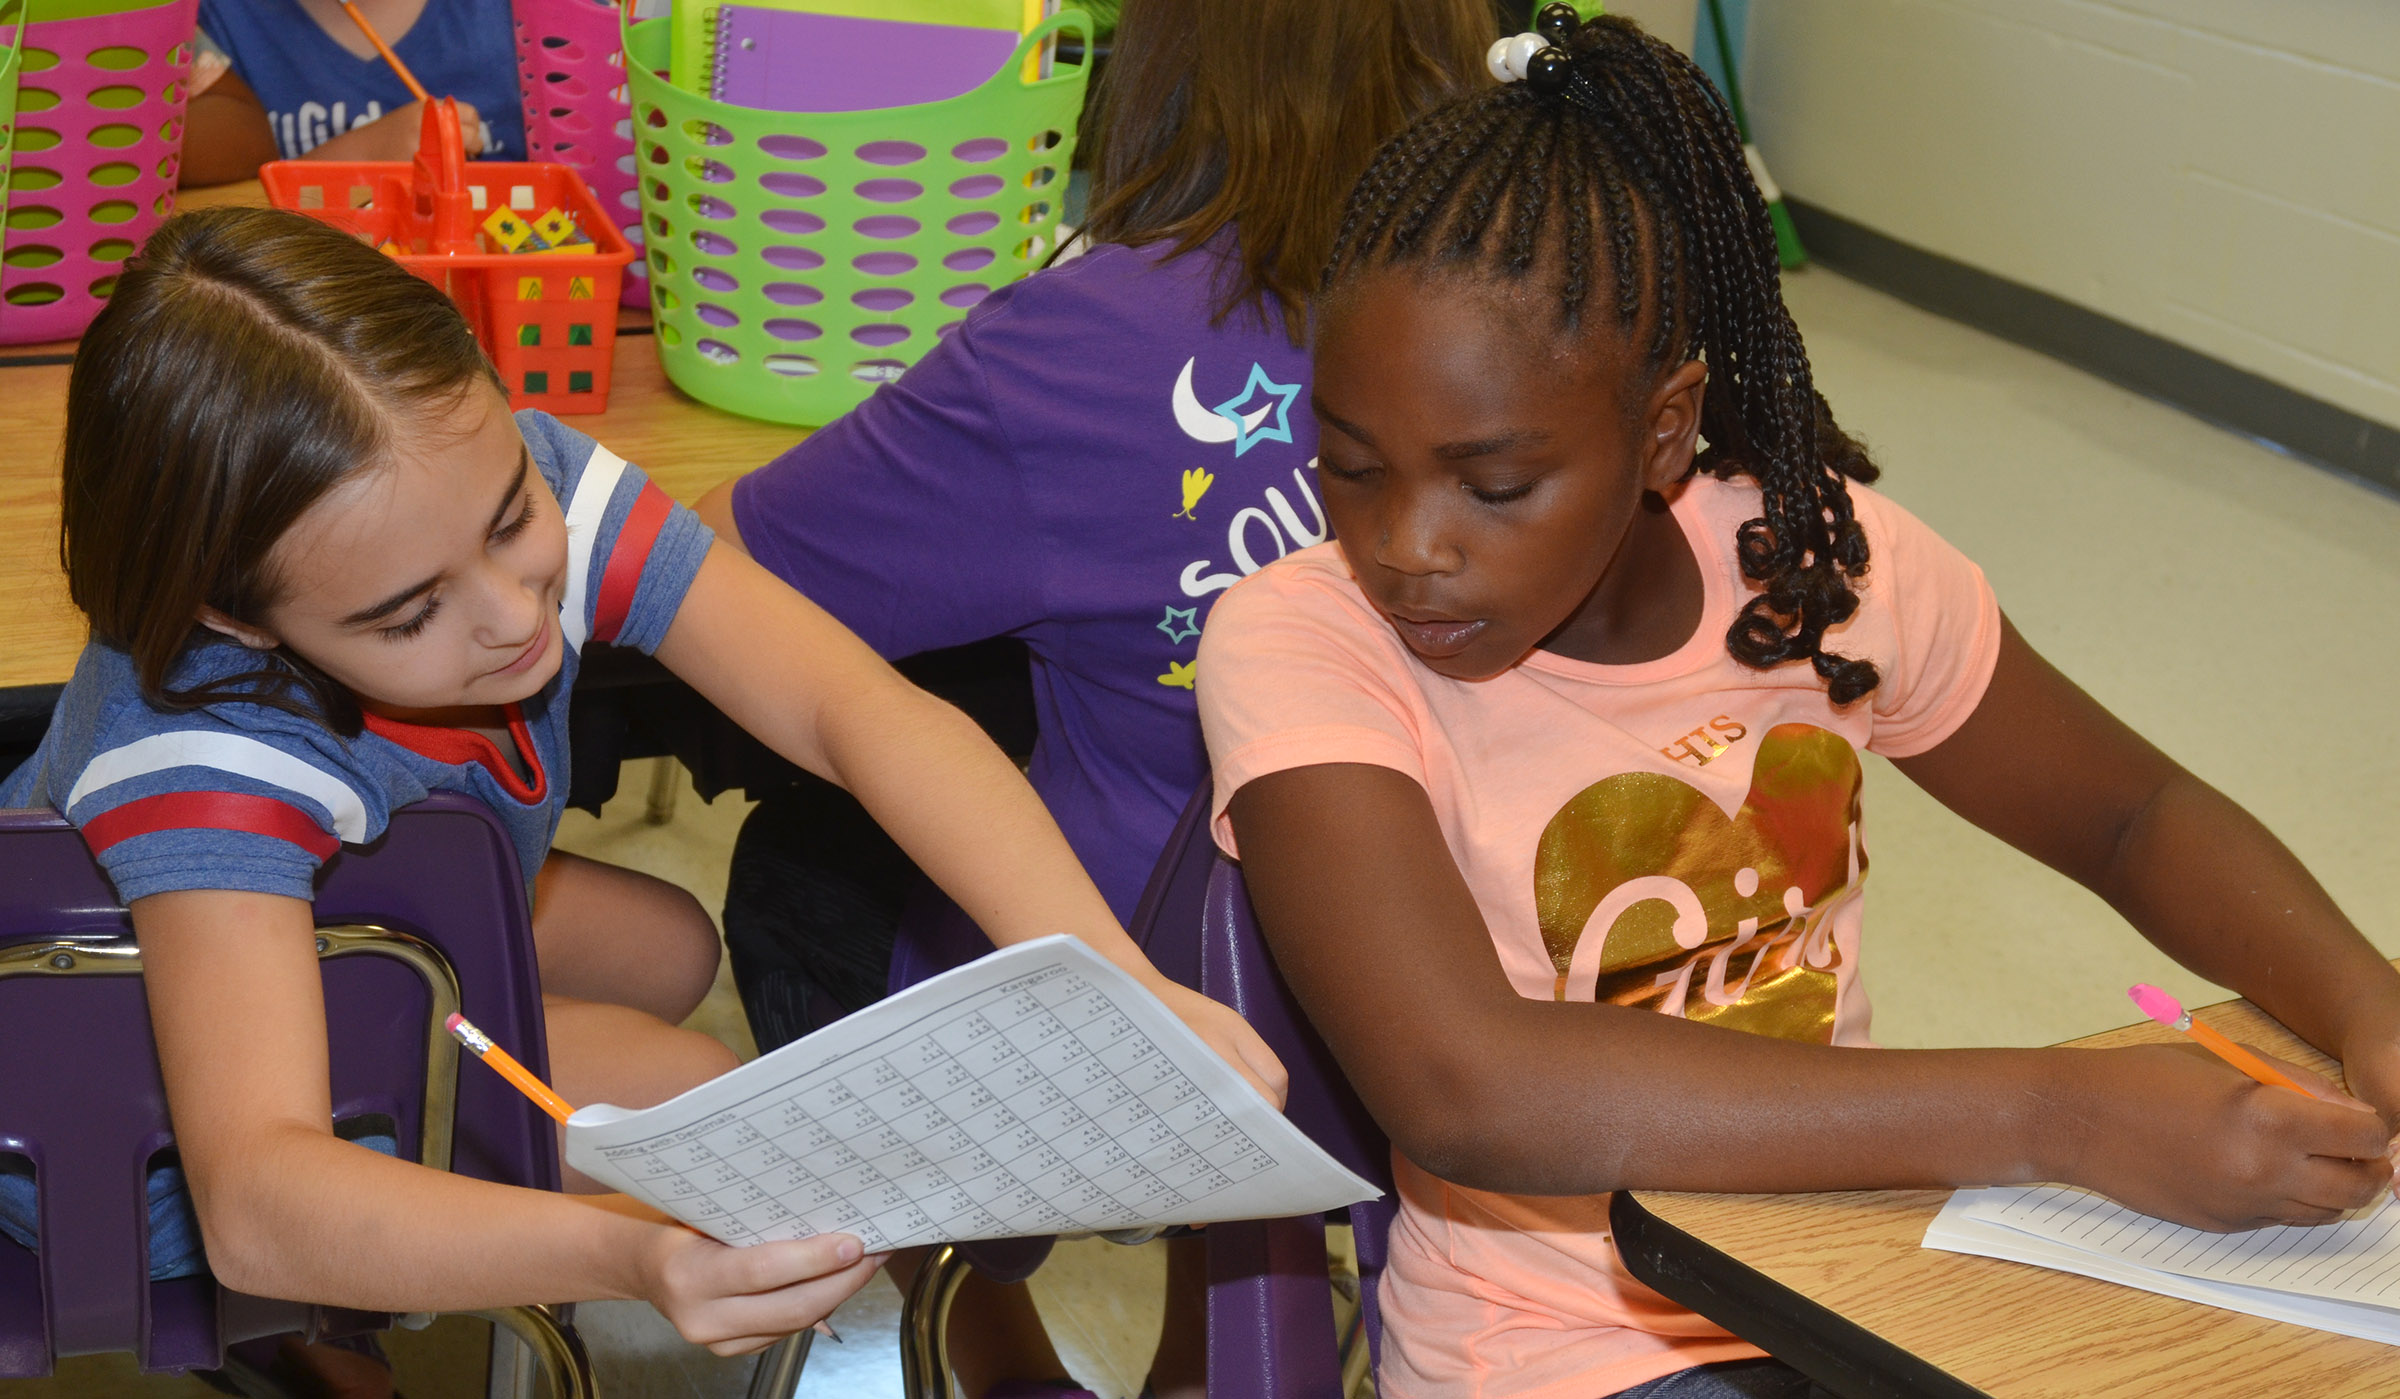 CES fifth-graders Anna Floyd, at left, and Ta'Zaria Owens talk about an assignment.